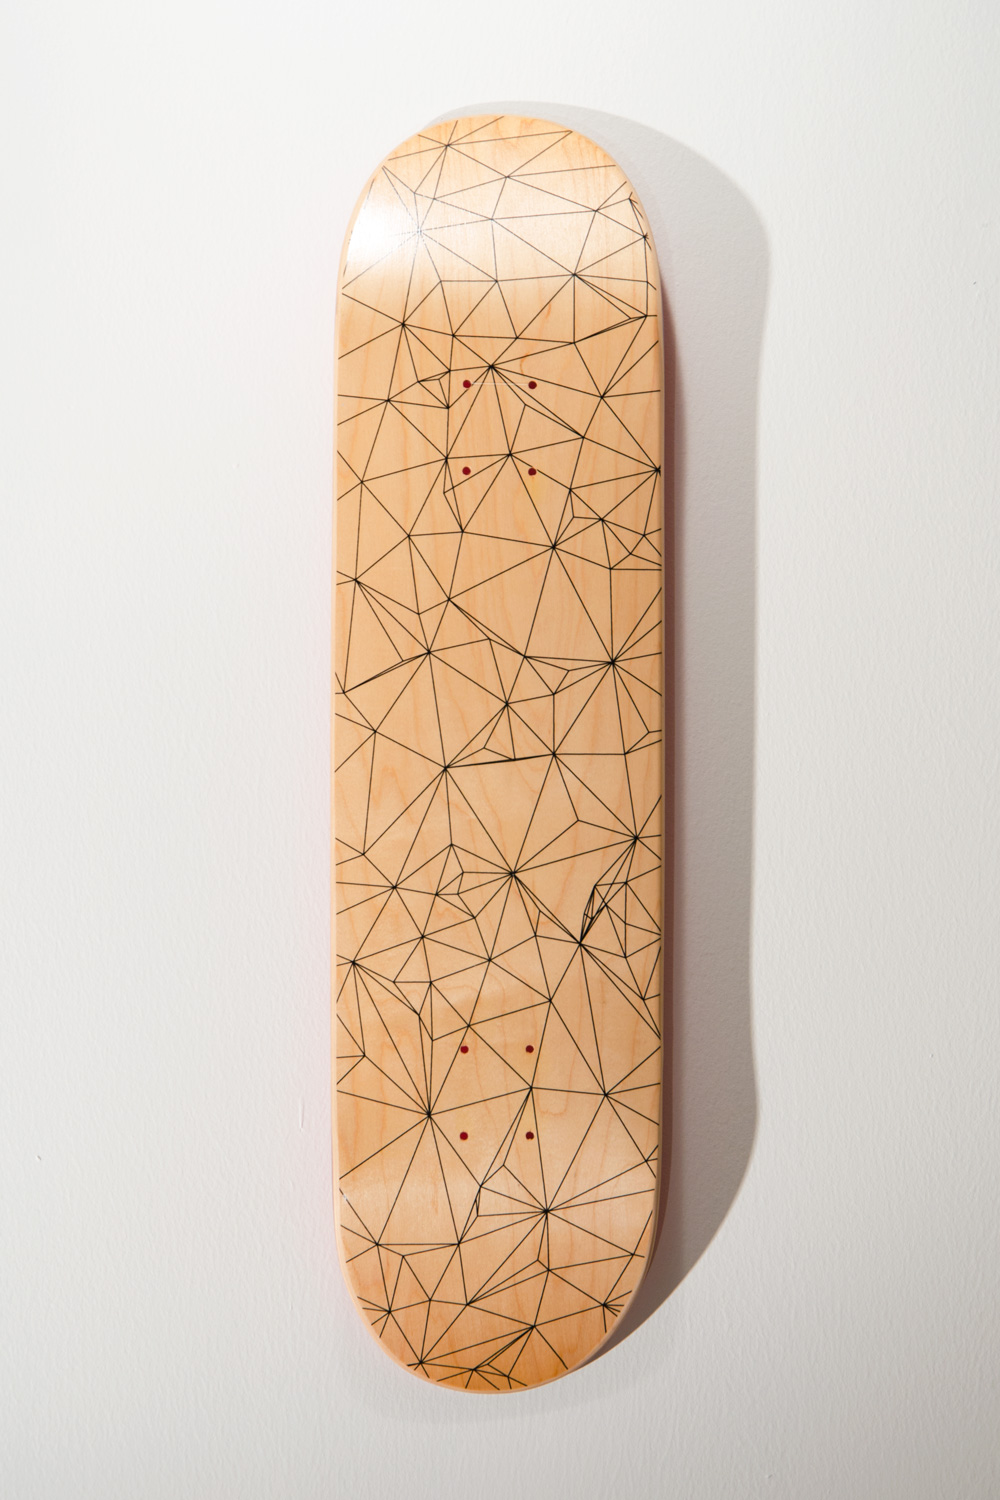 2012_T_Atwell_GenSk8_Prismatic_Lines.jpg